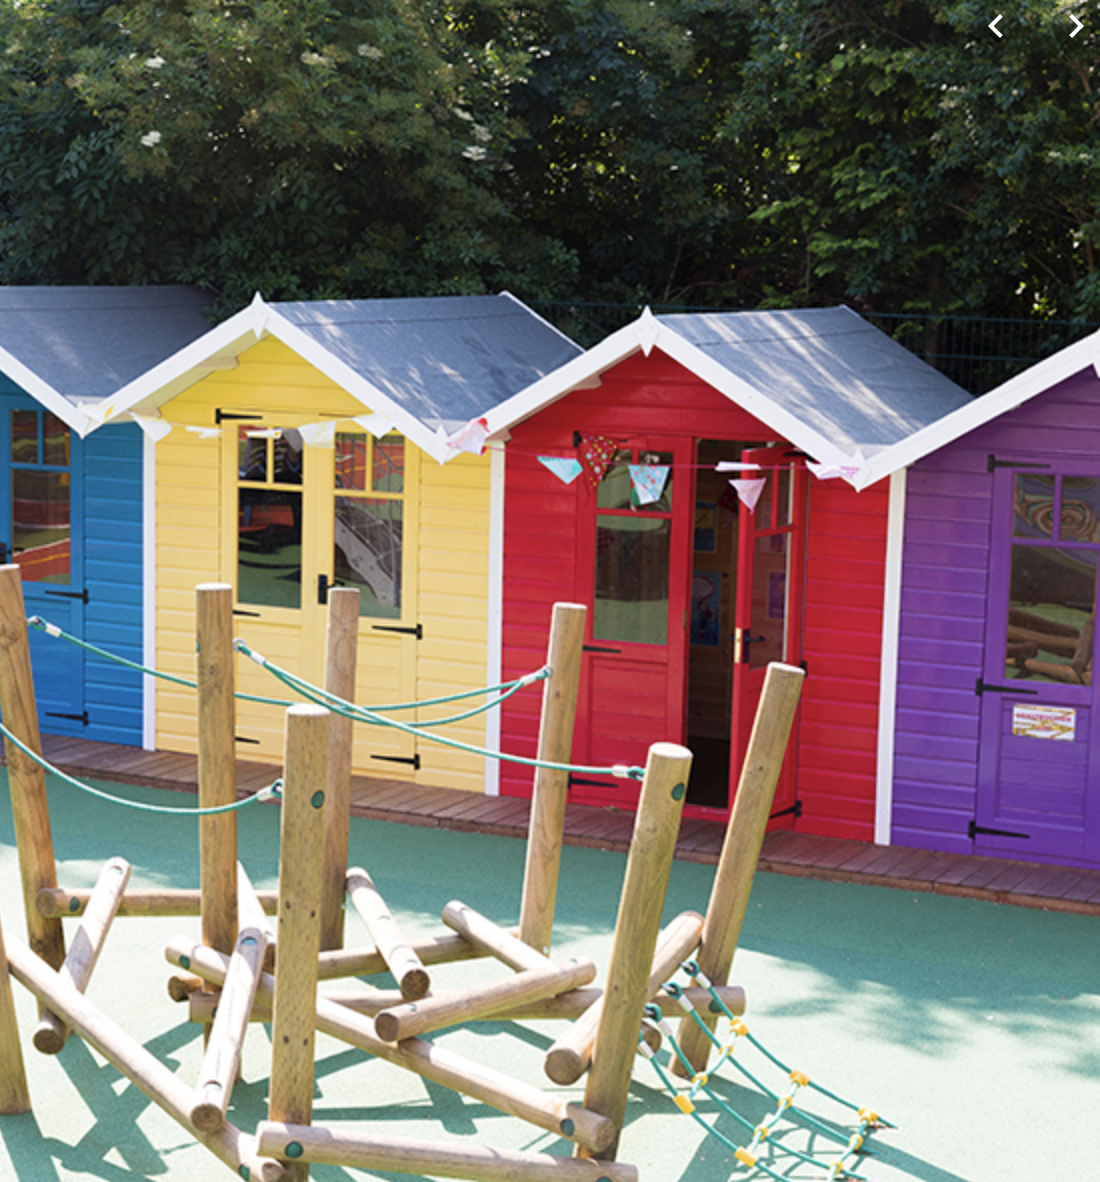 Beach huts for storing PE equipment at Sarum House School, Hampstead